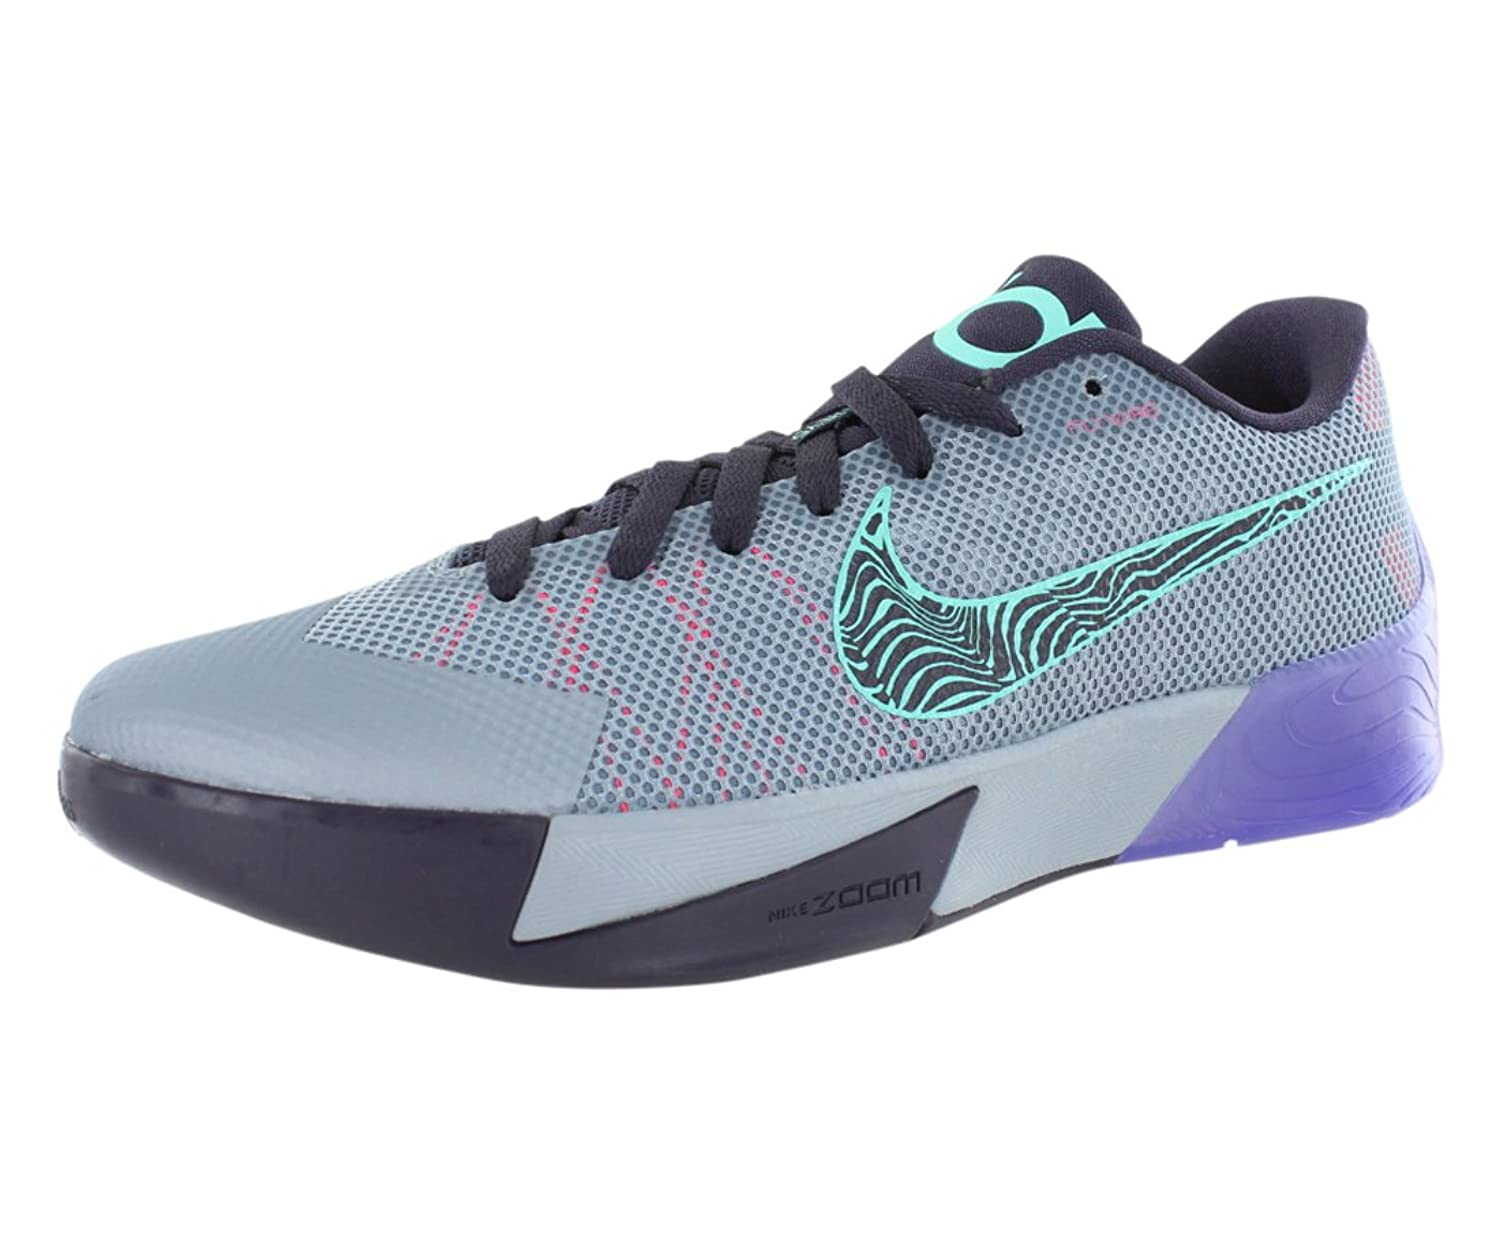 buy online 1b23b 7764f ... norway amazon nike mens kd trey 5 ii basketball shoes athletic magnet  gr purple hyper grape